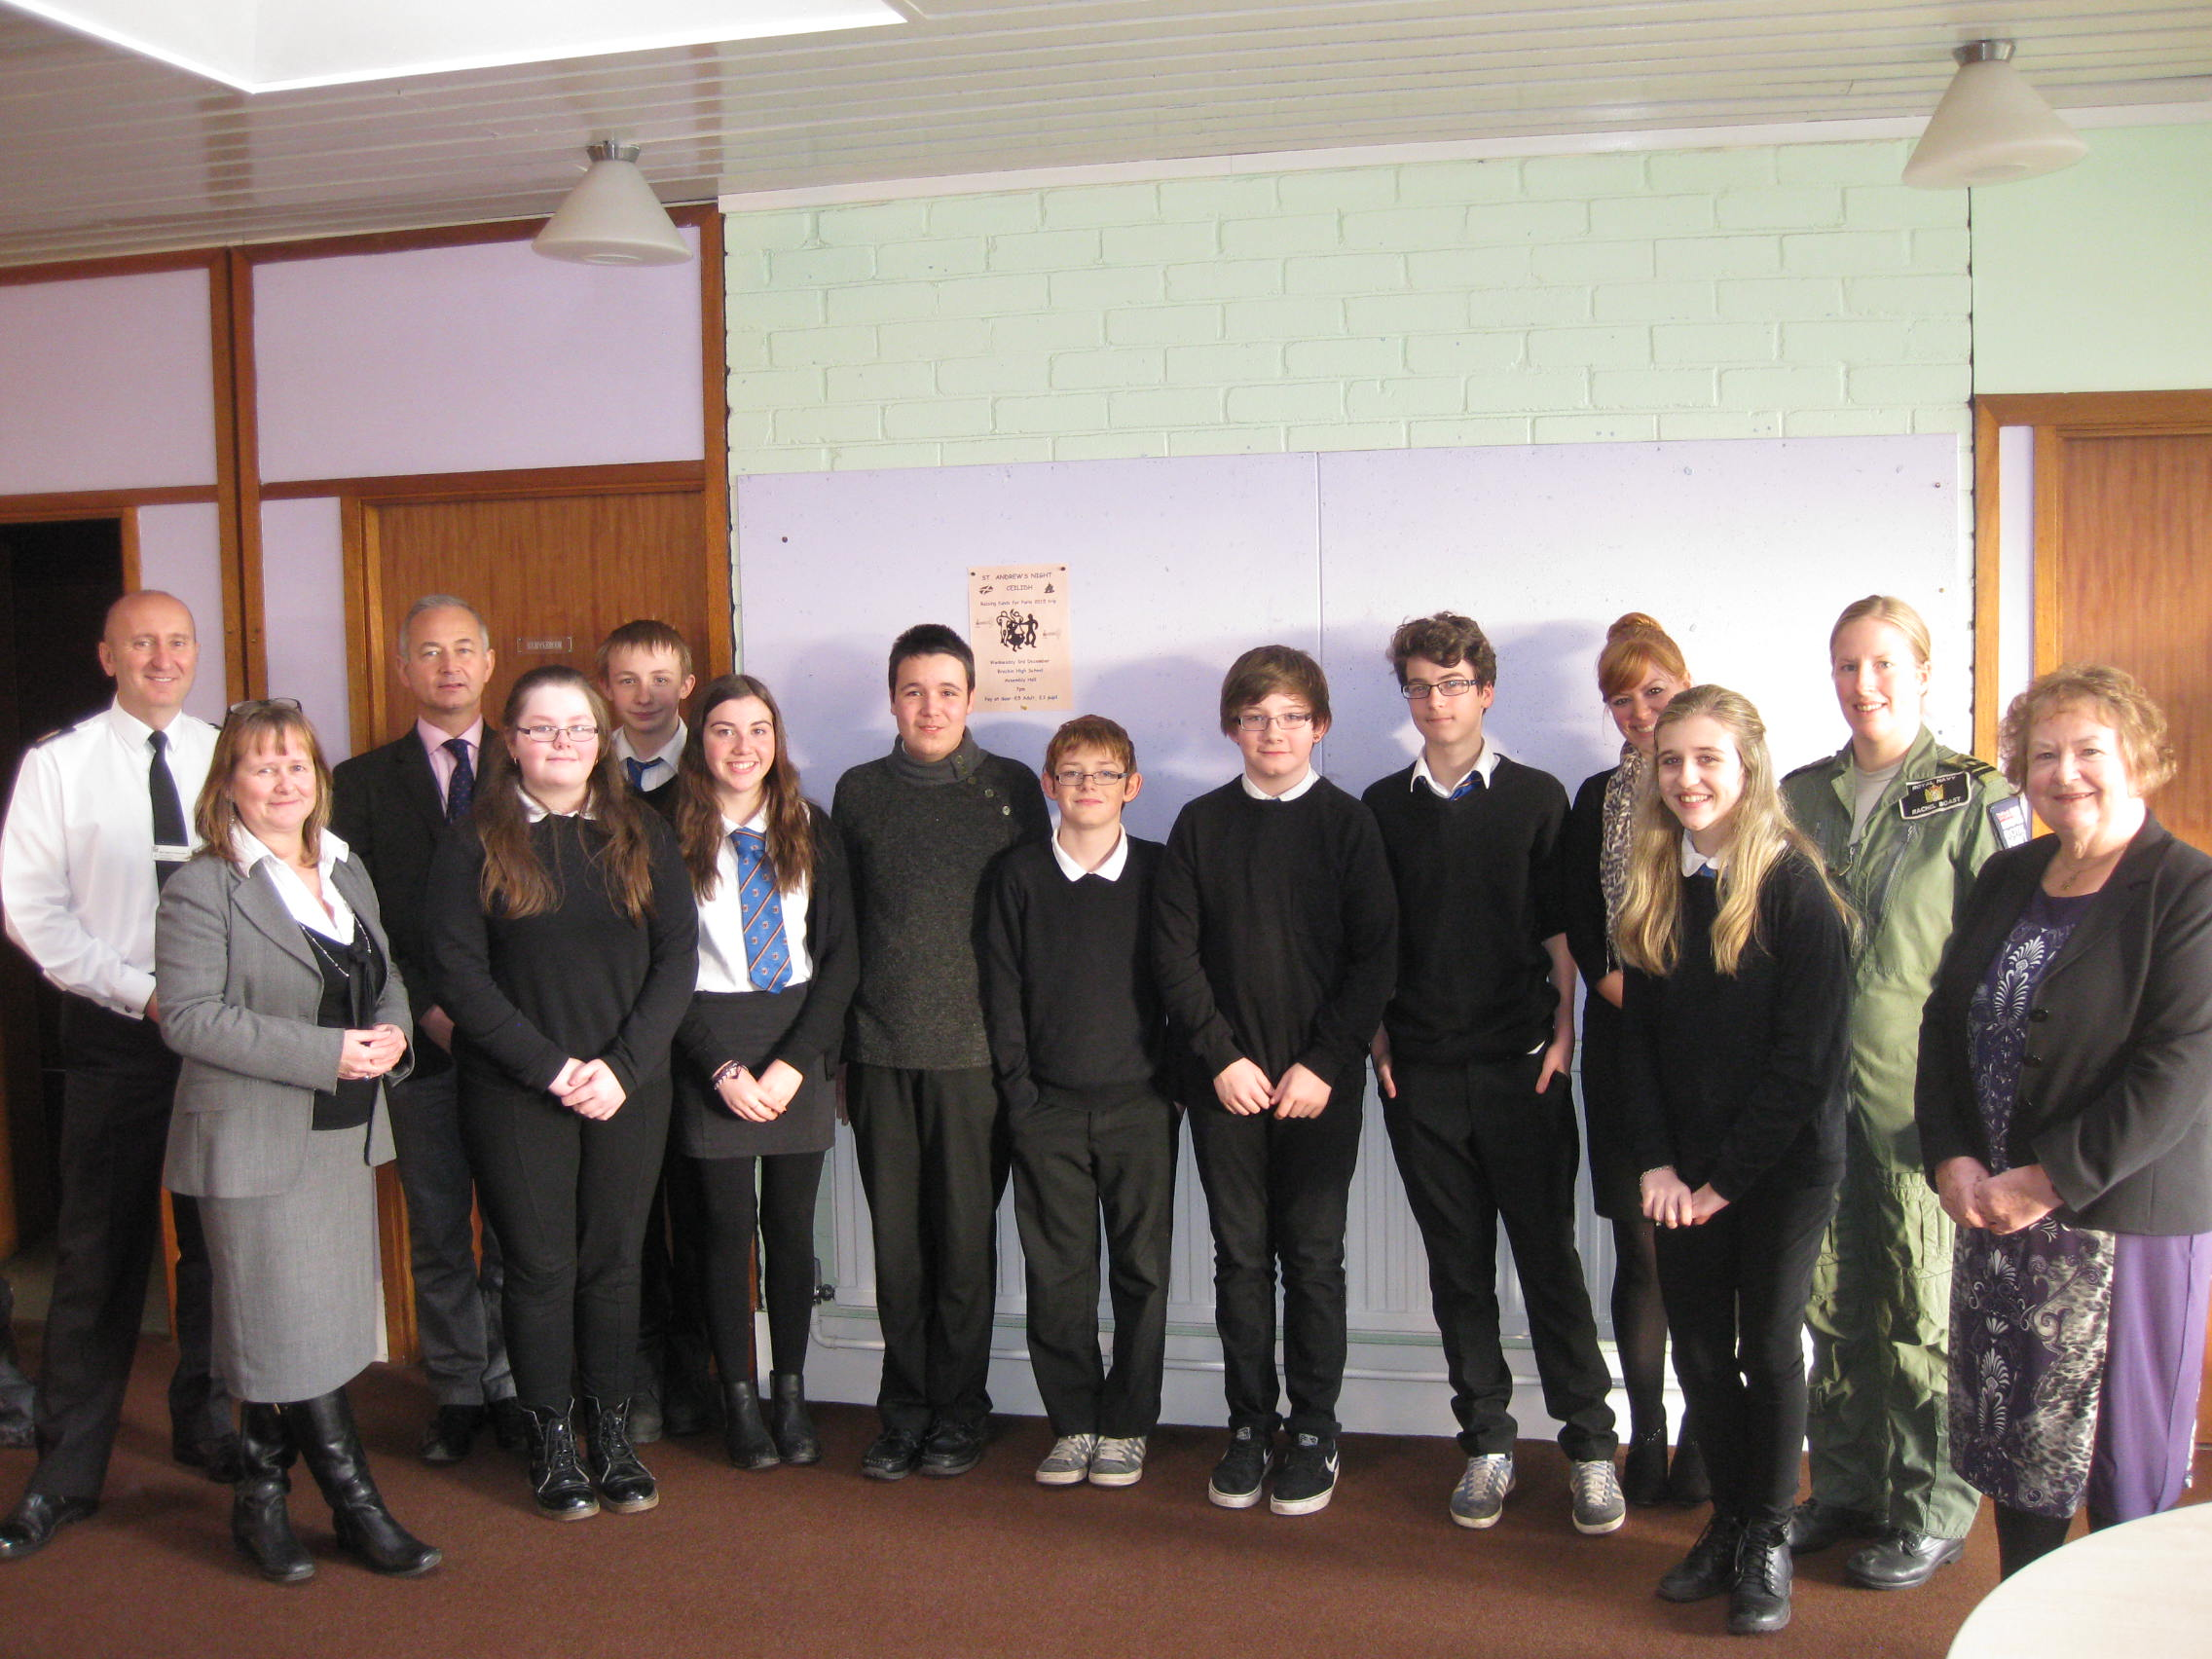 Pupils at Brechin High School